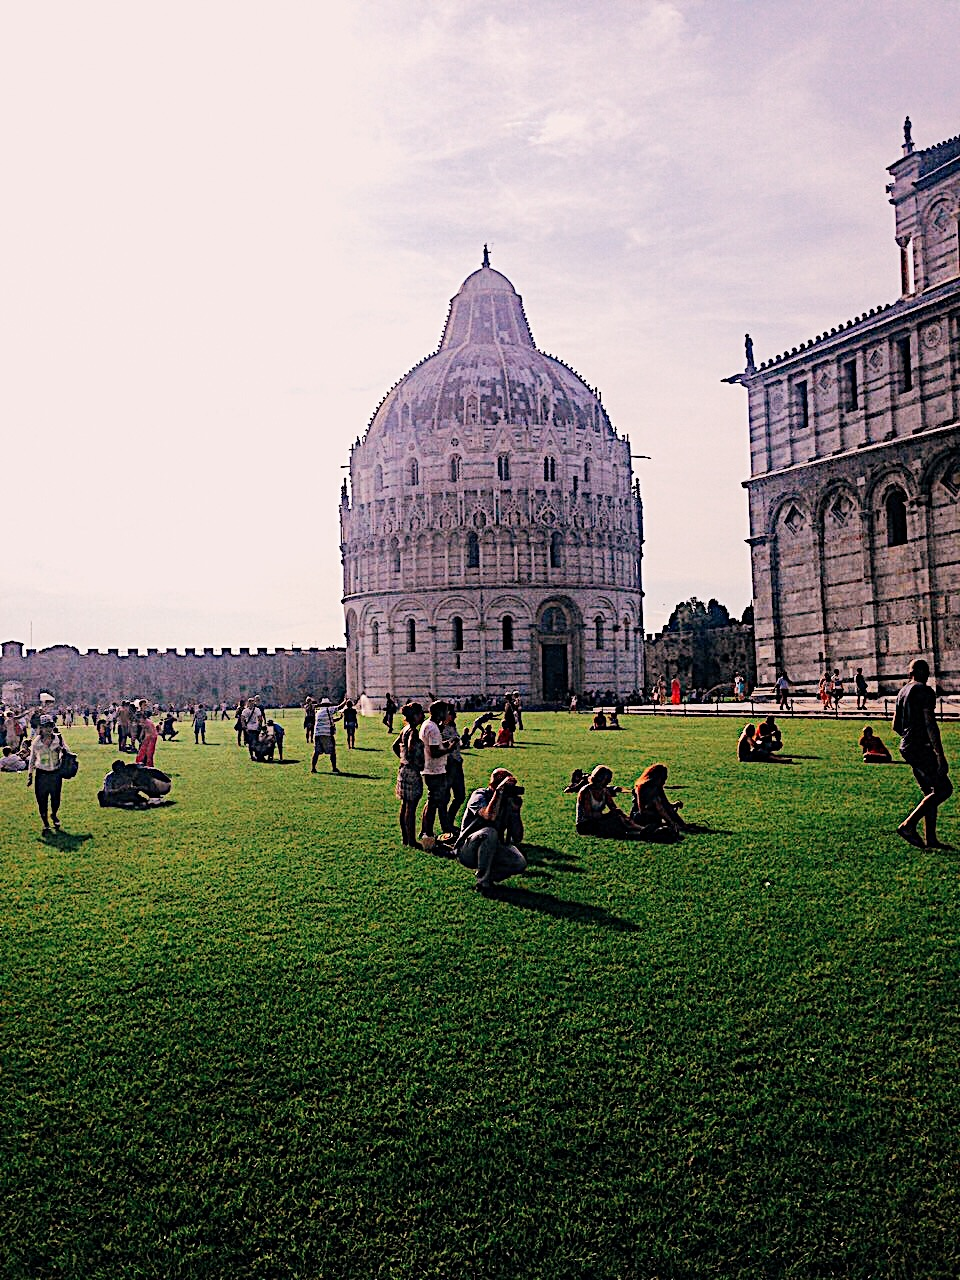 tuscany, pisa, leaning tower of pisa view, indian blog, indian blogger, top indian blog, indian luxury blog, uk blog, british blog, london blog, delhi blogger, delhi travel blogger, indian travel blog, italy, why u must visit italy, places to go in italy, italy food culture, italy travel guide, reasons to go to italy, must visit places on earth, must visit countries, summer trip, where to go in summer, italian people, europe trip, venice, indian and italian, real italy